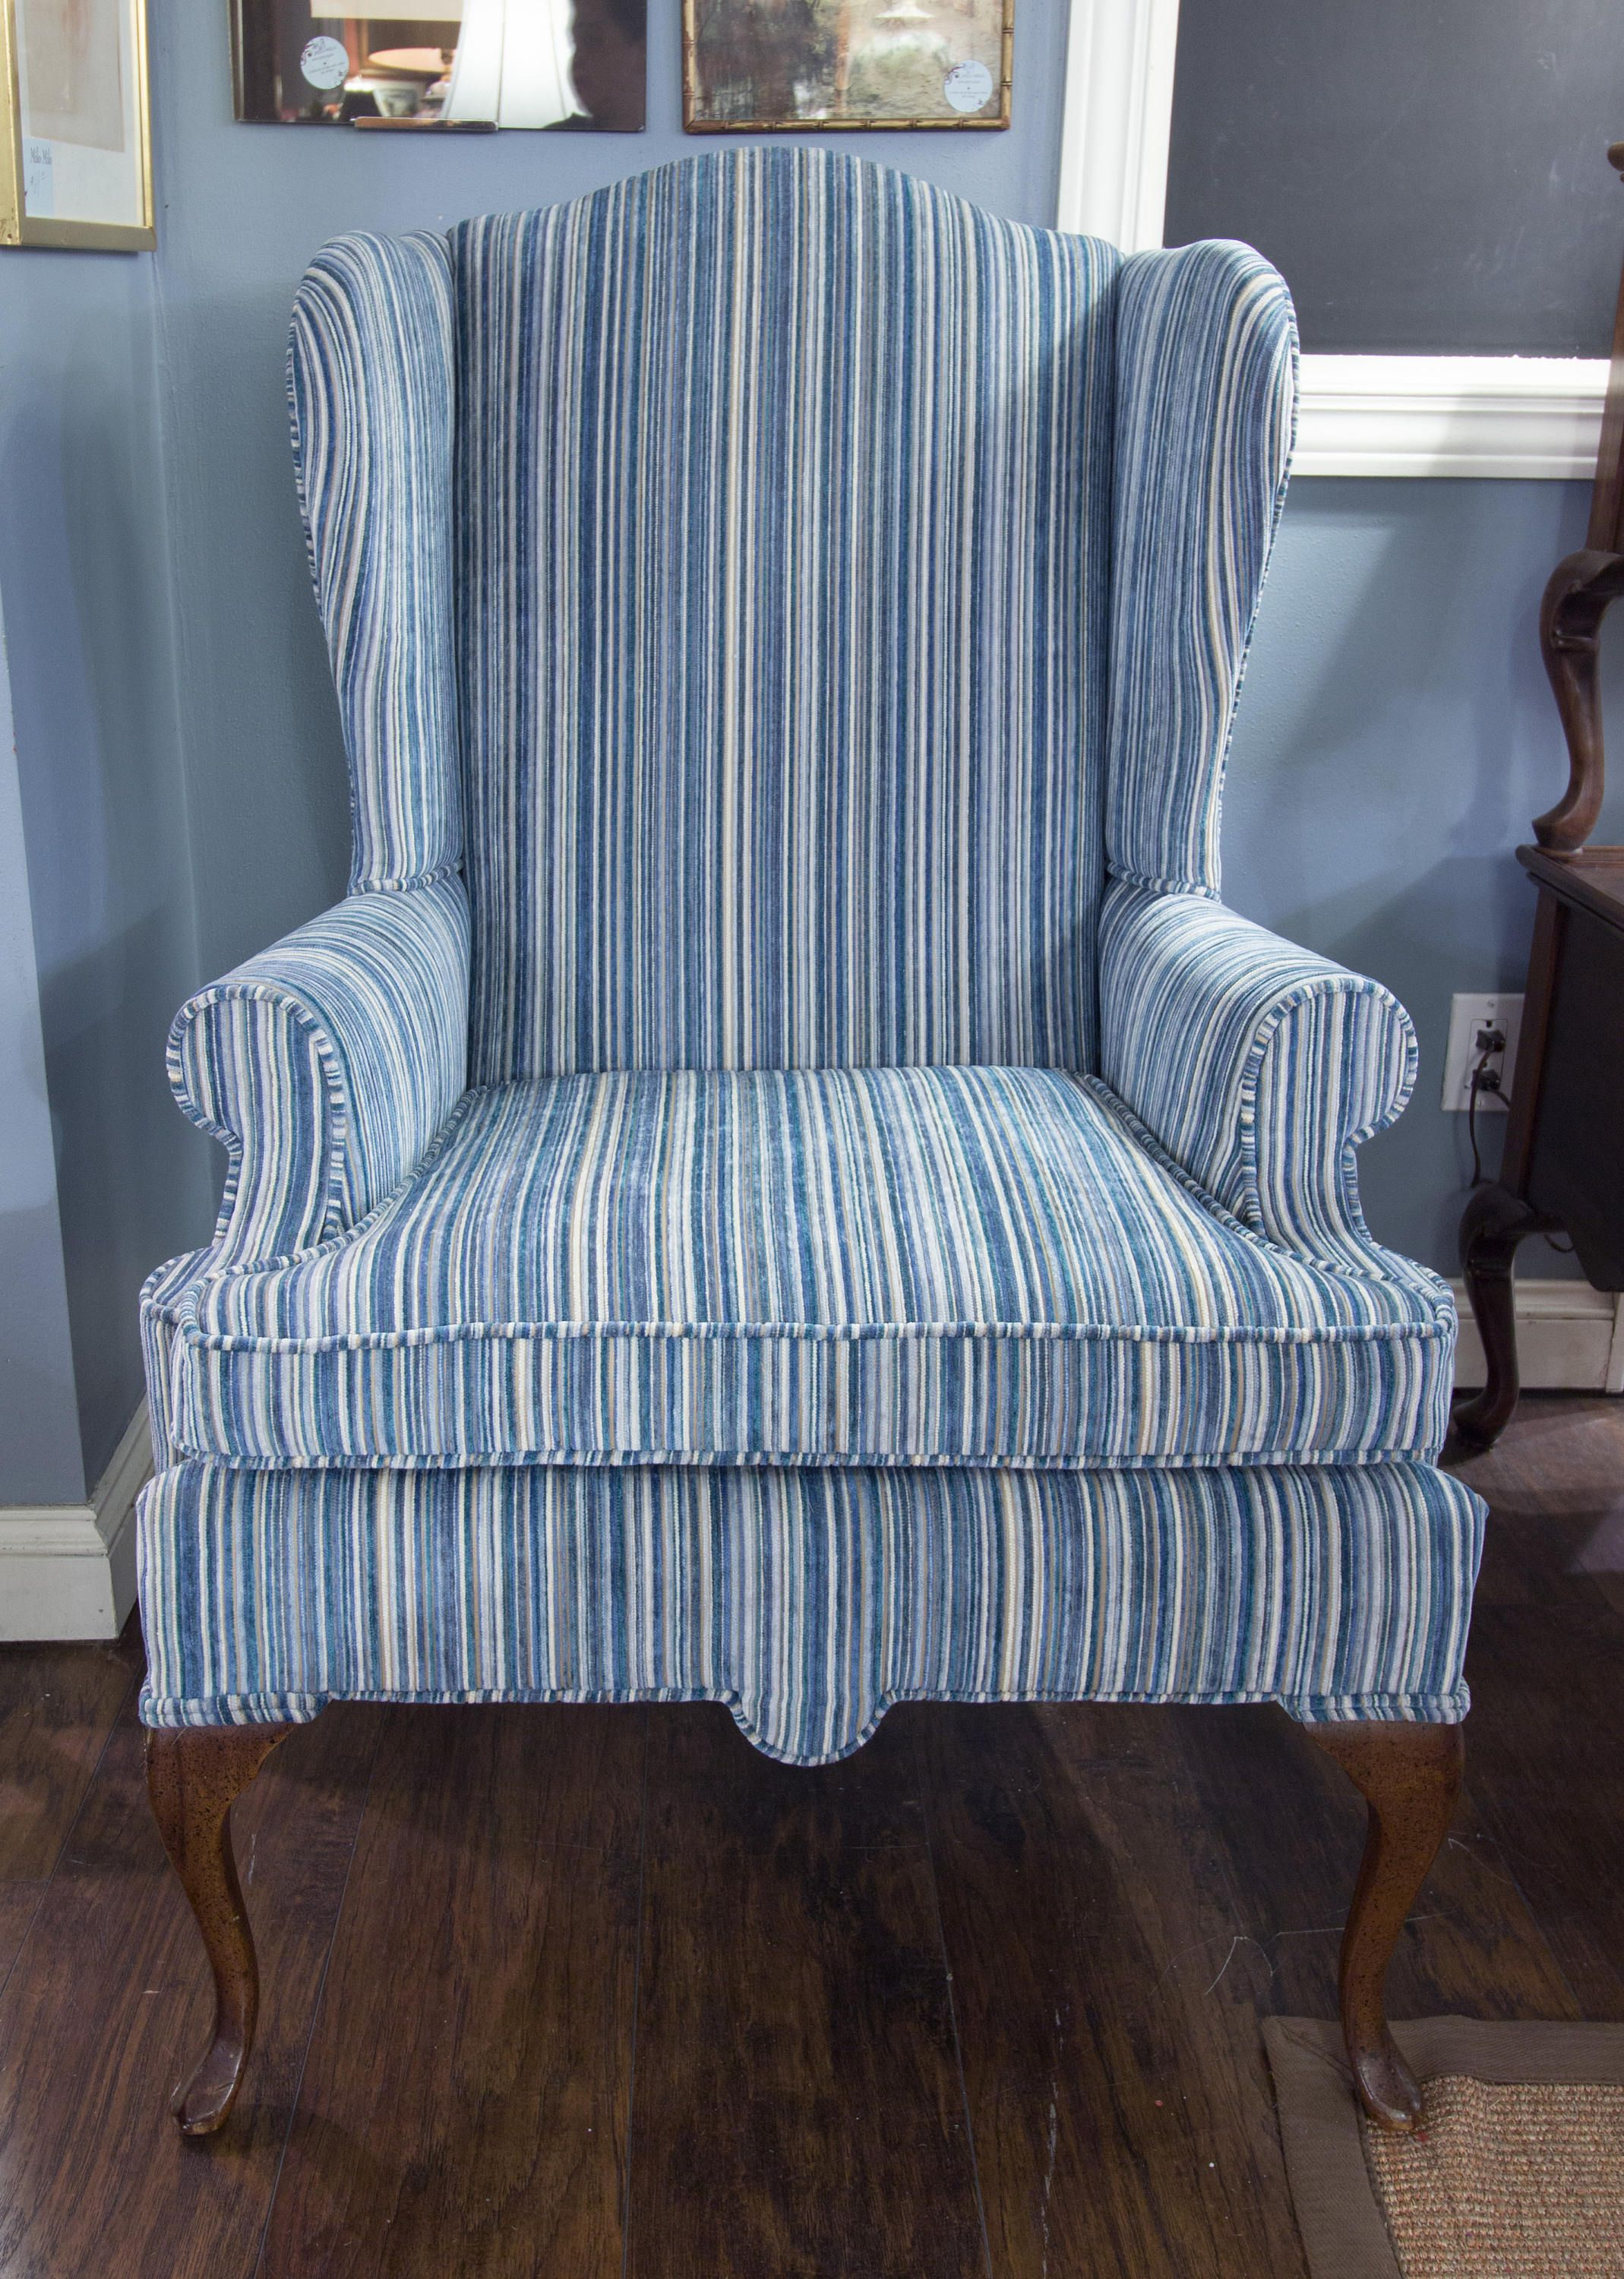 Blue And White Striped Wingback Chair Reupholstered Vintage